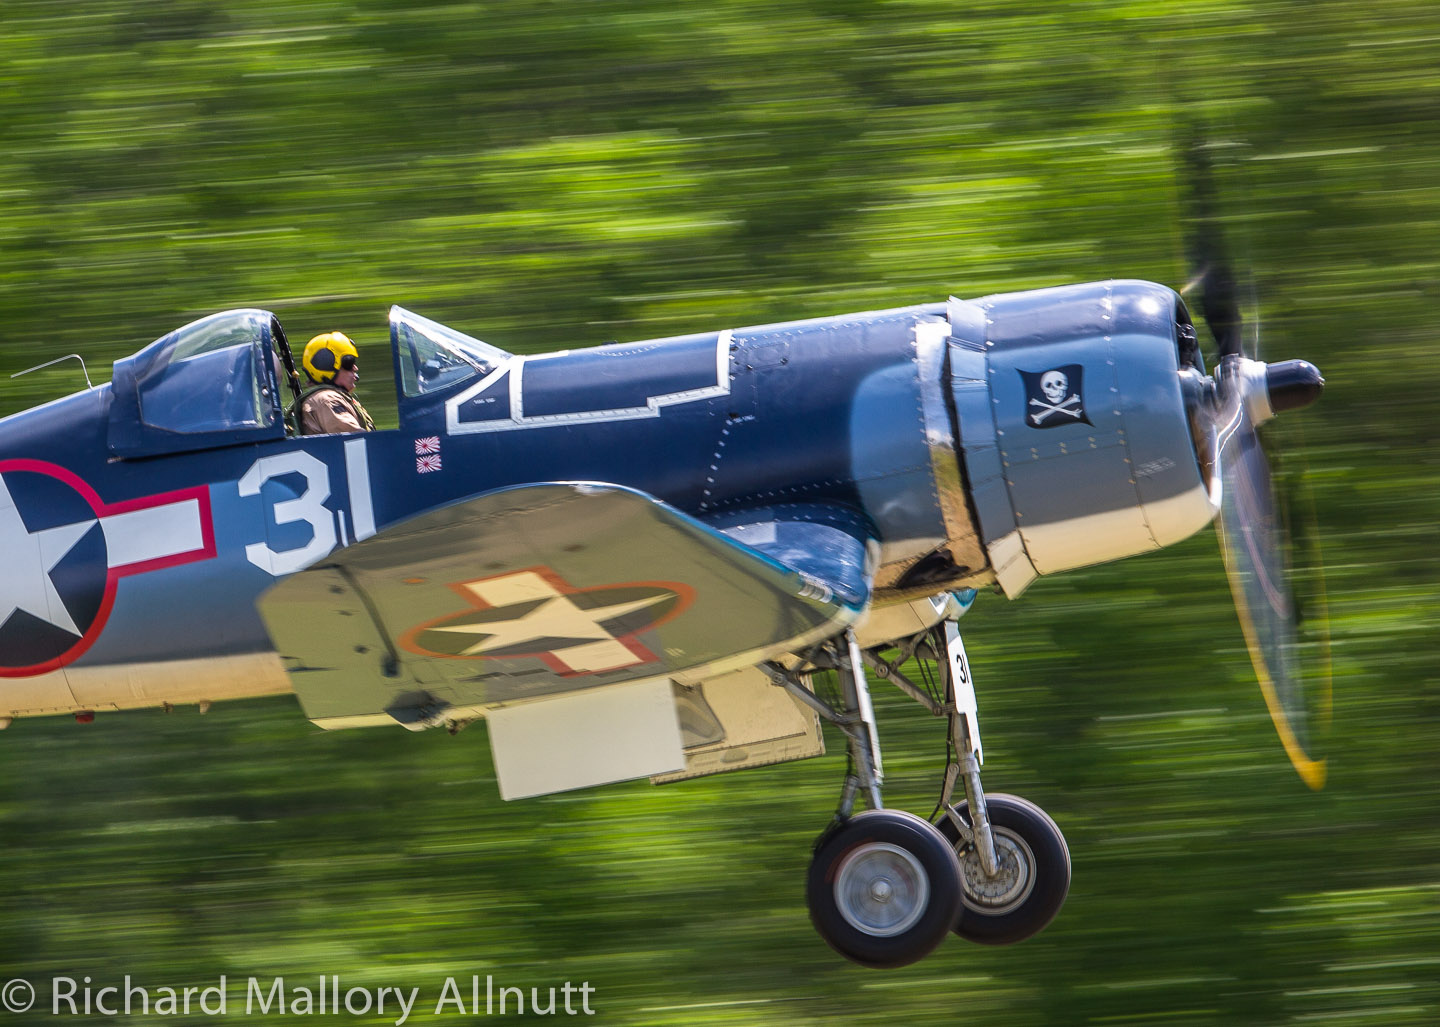 _C8A9735 - Richard Mallory Allnutt photo - Warbirds Over the Beach - Military Aviation Museum - Pungo, VA - May 17, 2014